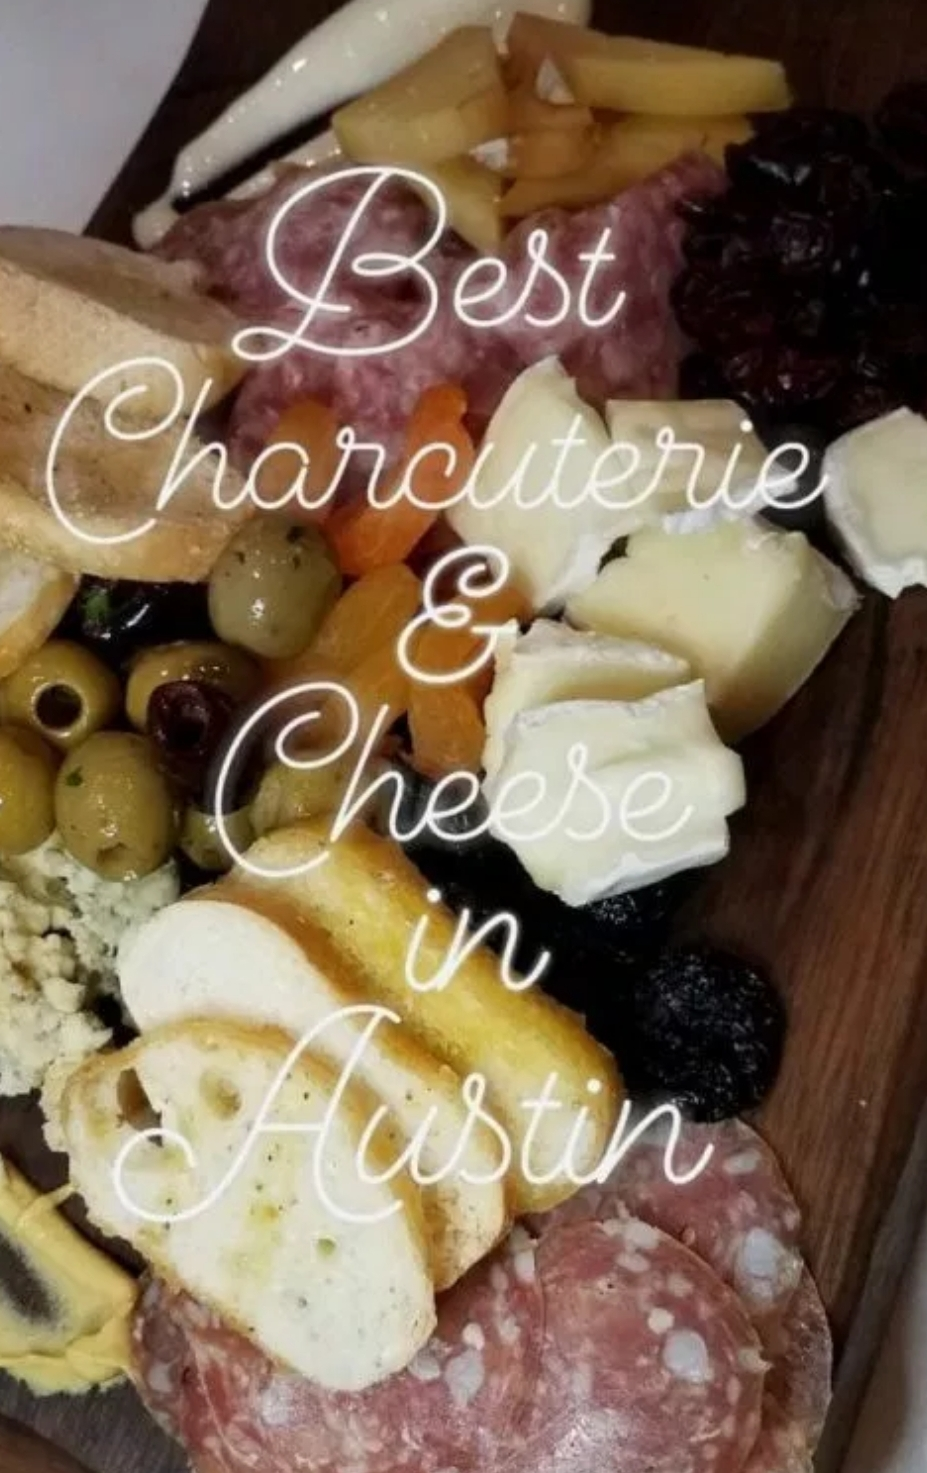 Charcuterie & Cheese: Austin's Best